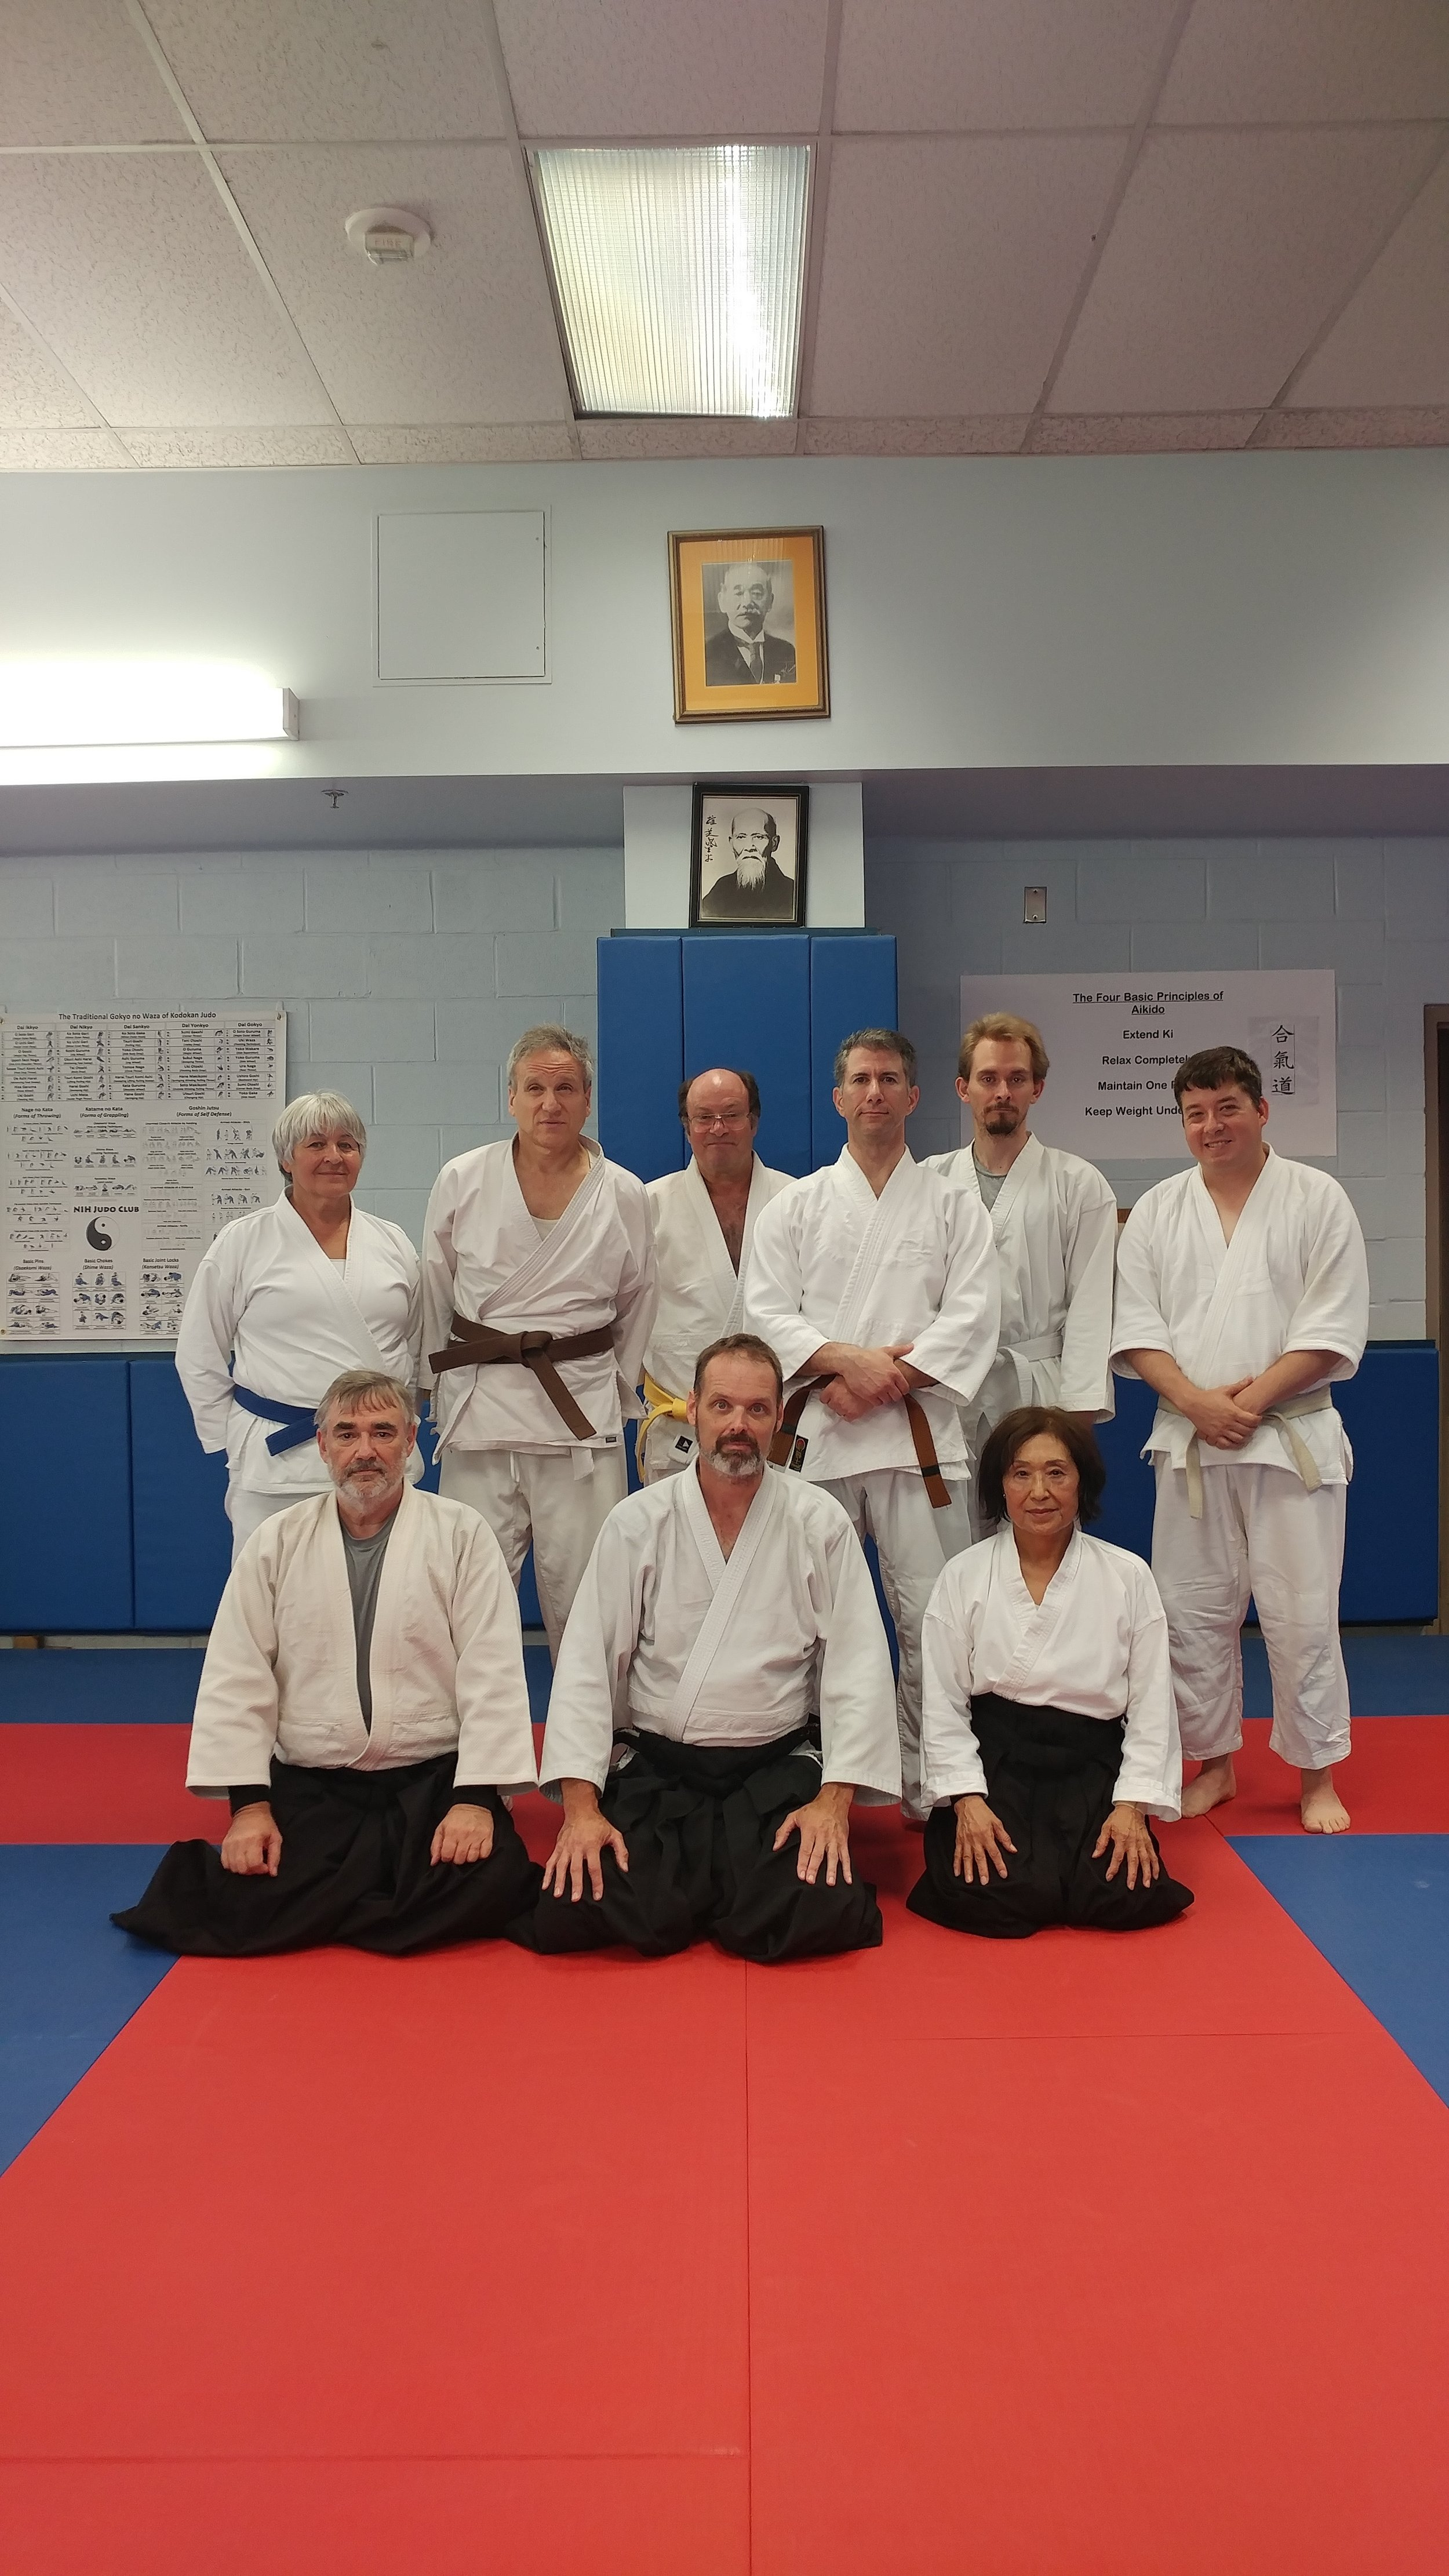 Aikido seminar conducted by John Whatley Sensei on July 22nd, 2017 at the NIH dojo in Bethesda, Maryland.